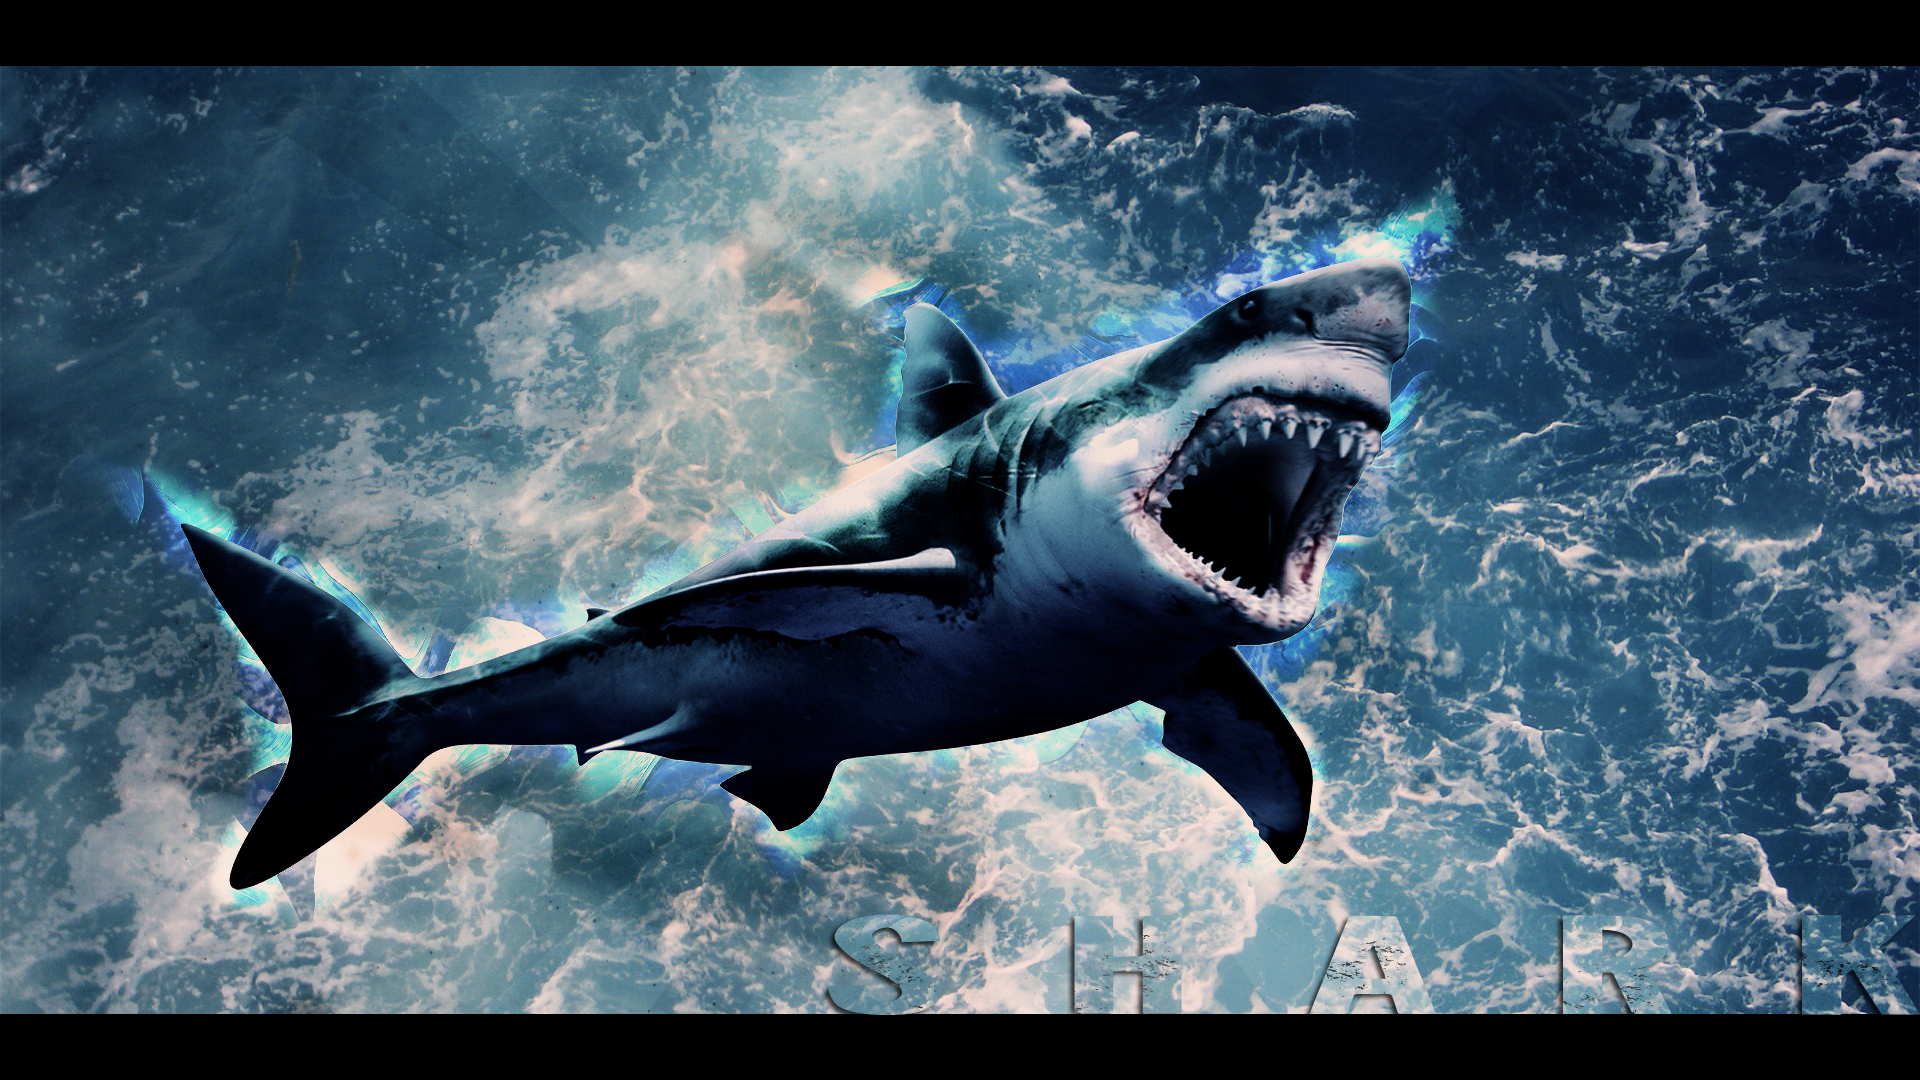 Shark Wallpaper HD by Tooyp on DeviantArt